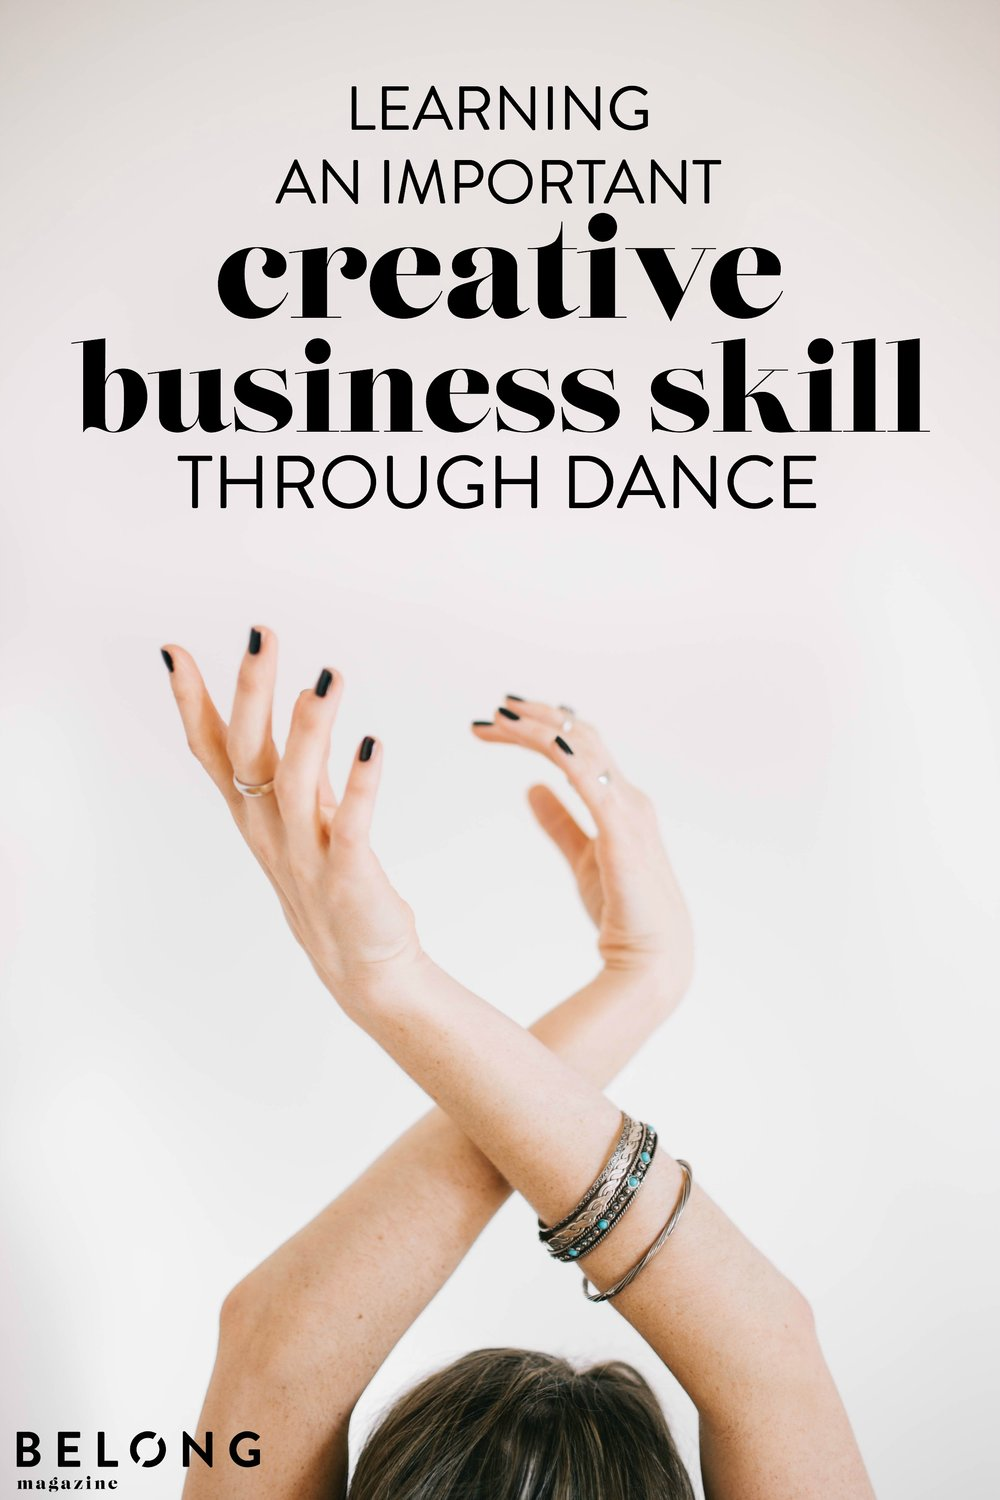 how one woman learned an important, creative business skill through dance with Ruby Smith on Belong Magazine Blog